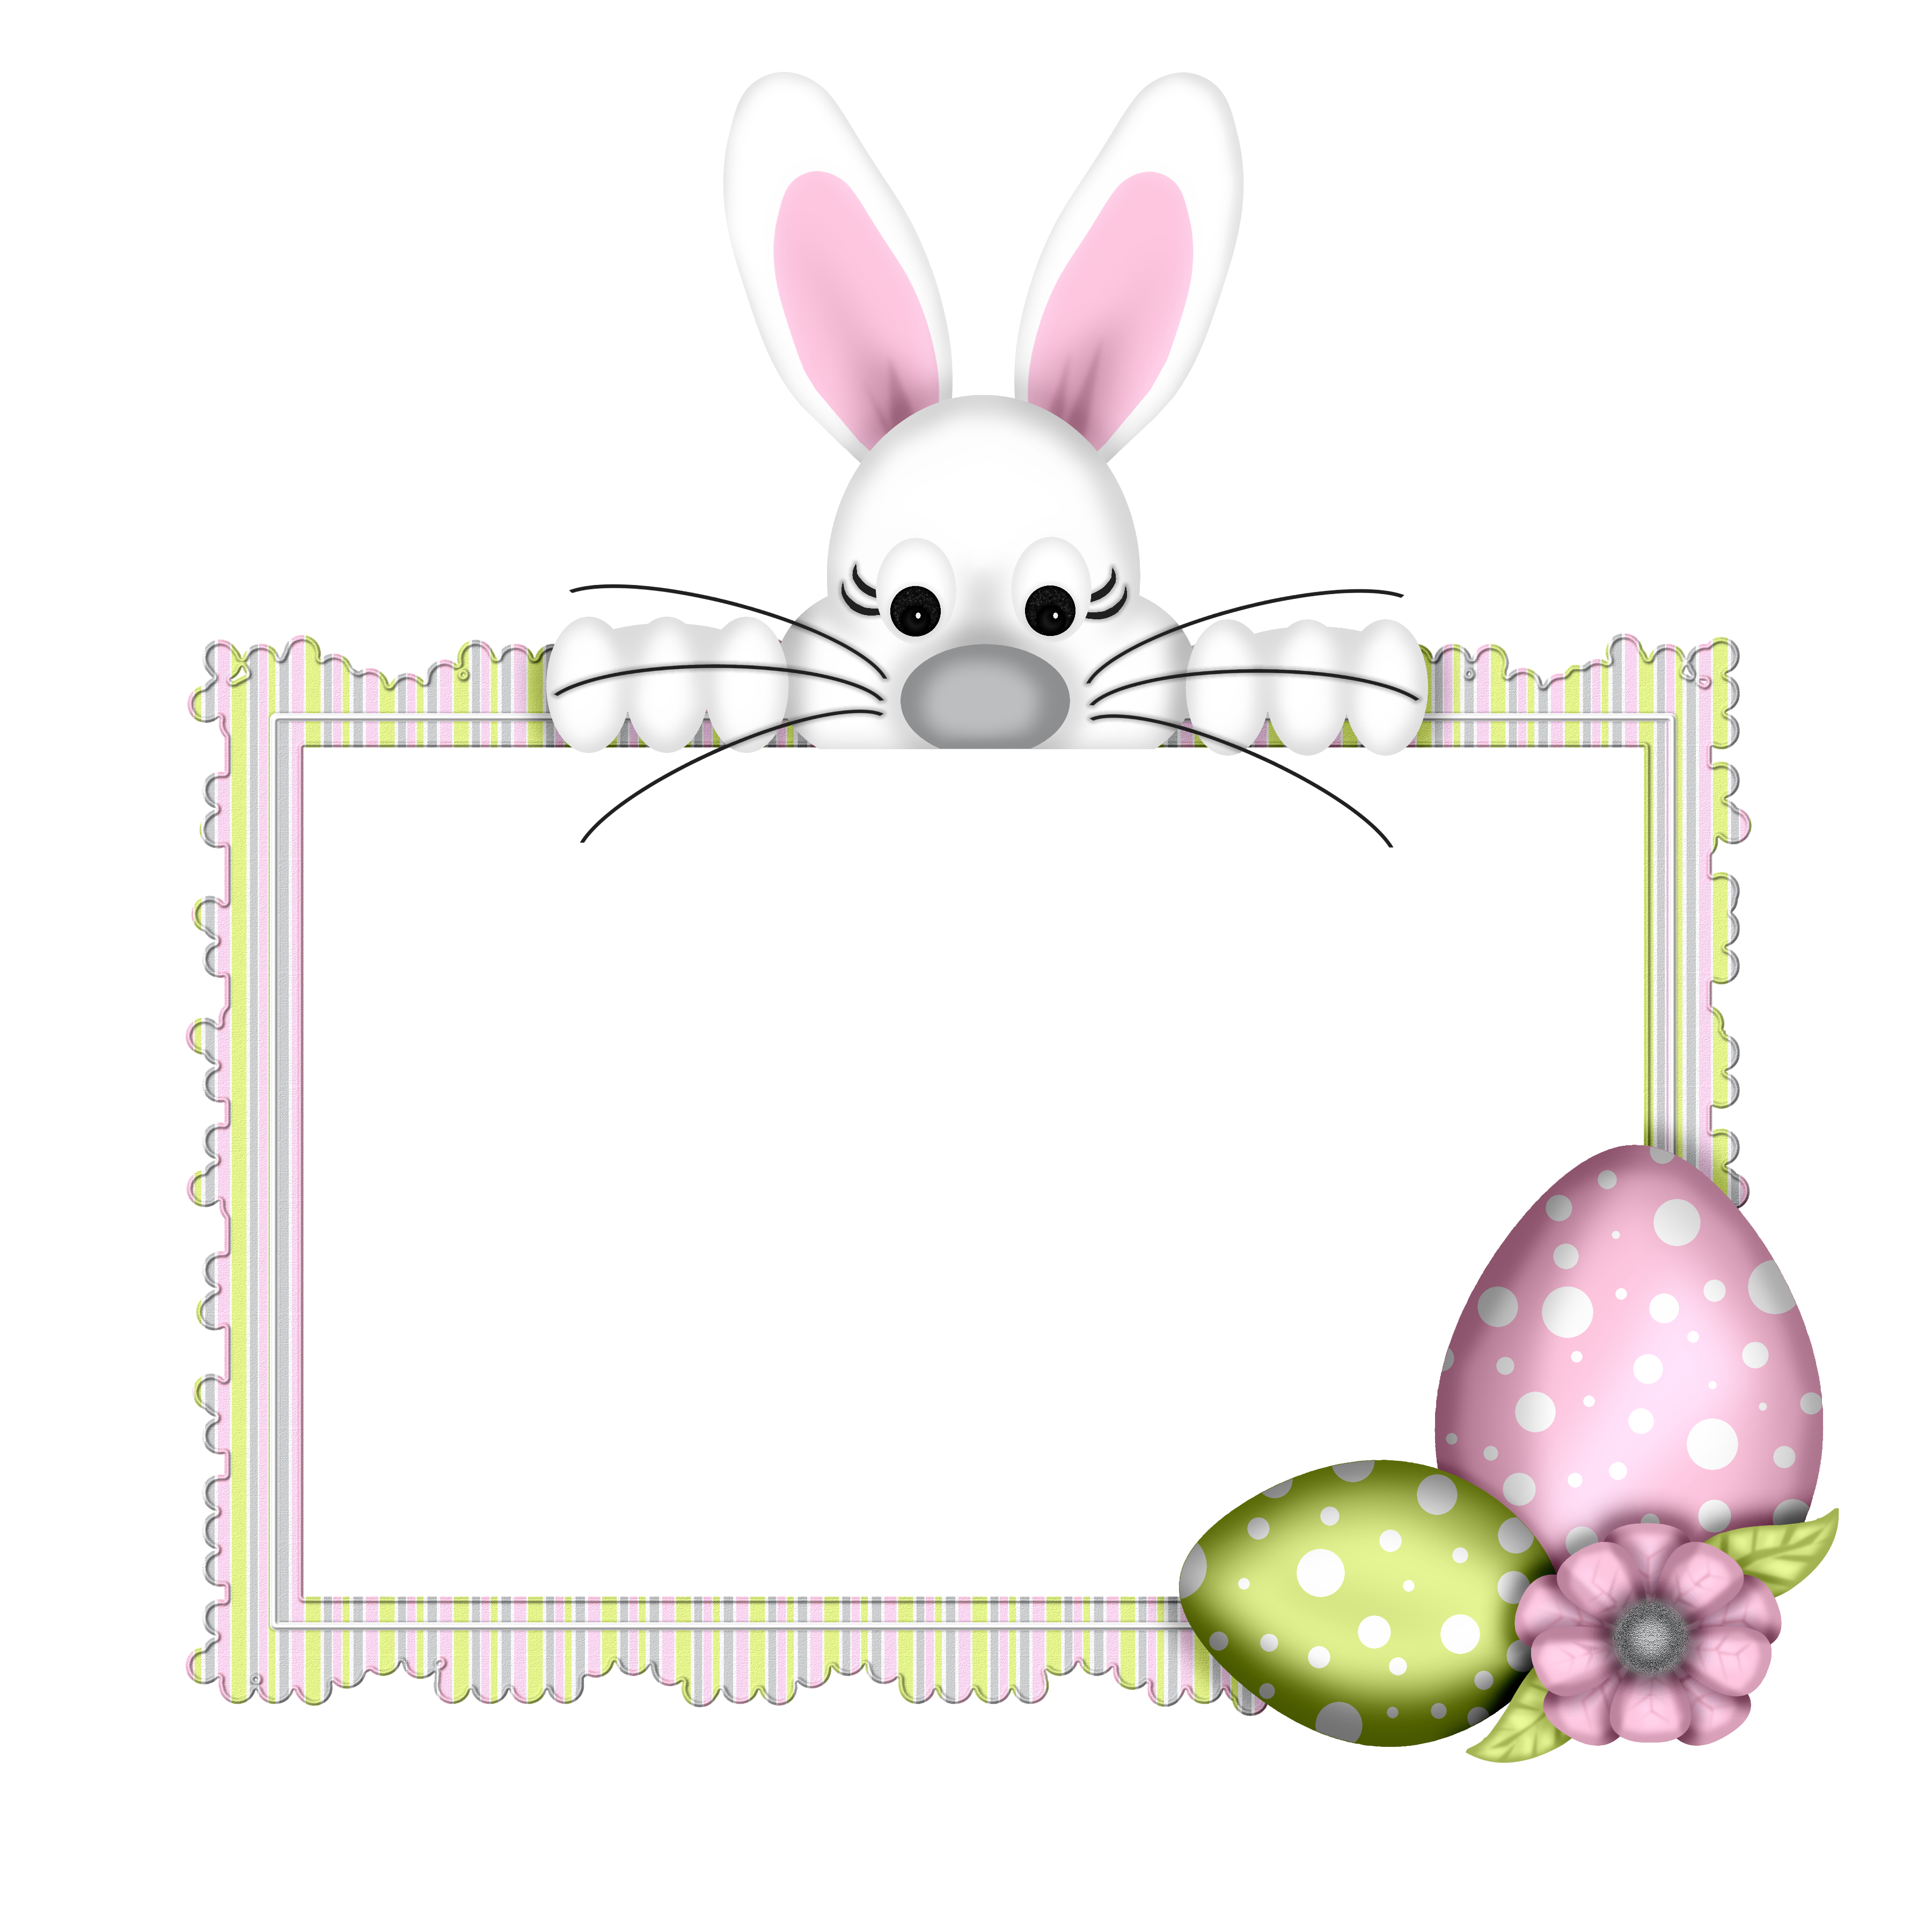 Bunnies Hare Easter Photography Egg Bunny PNG Image